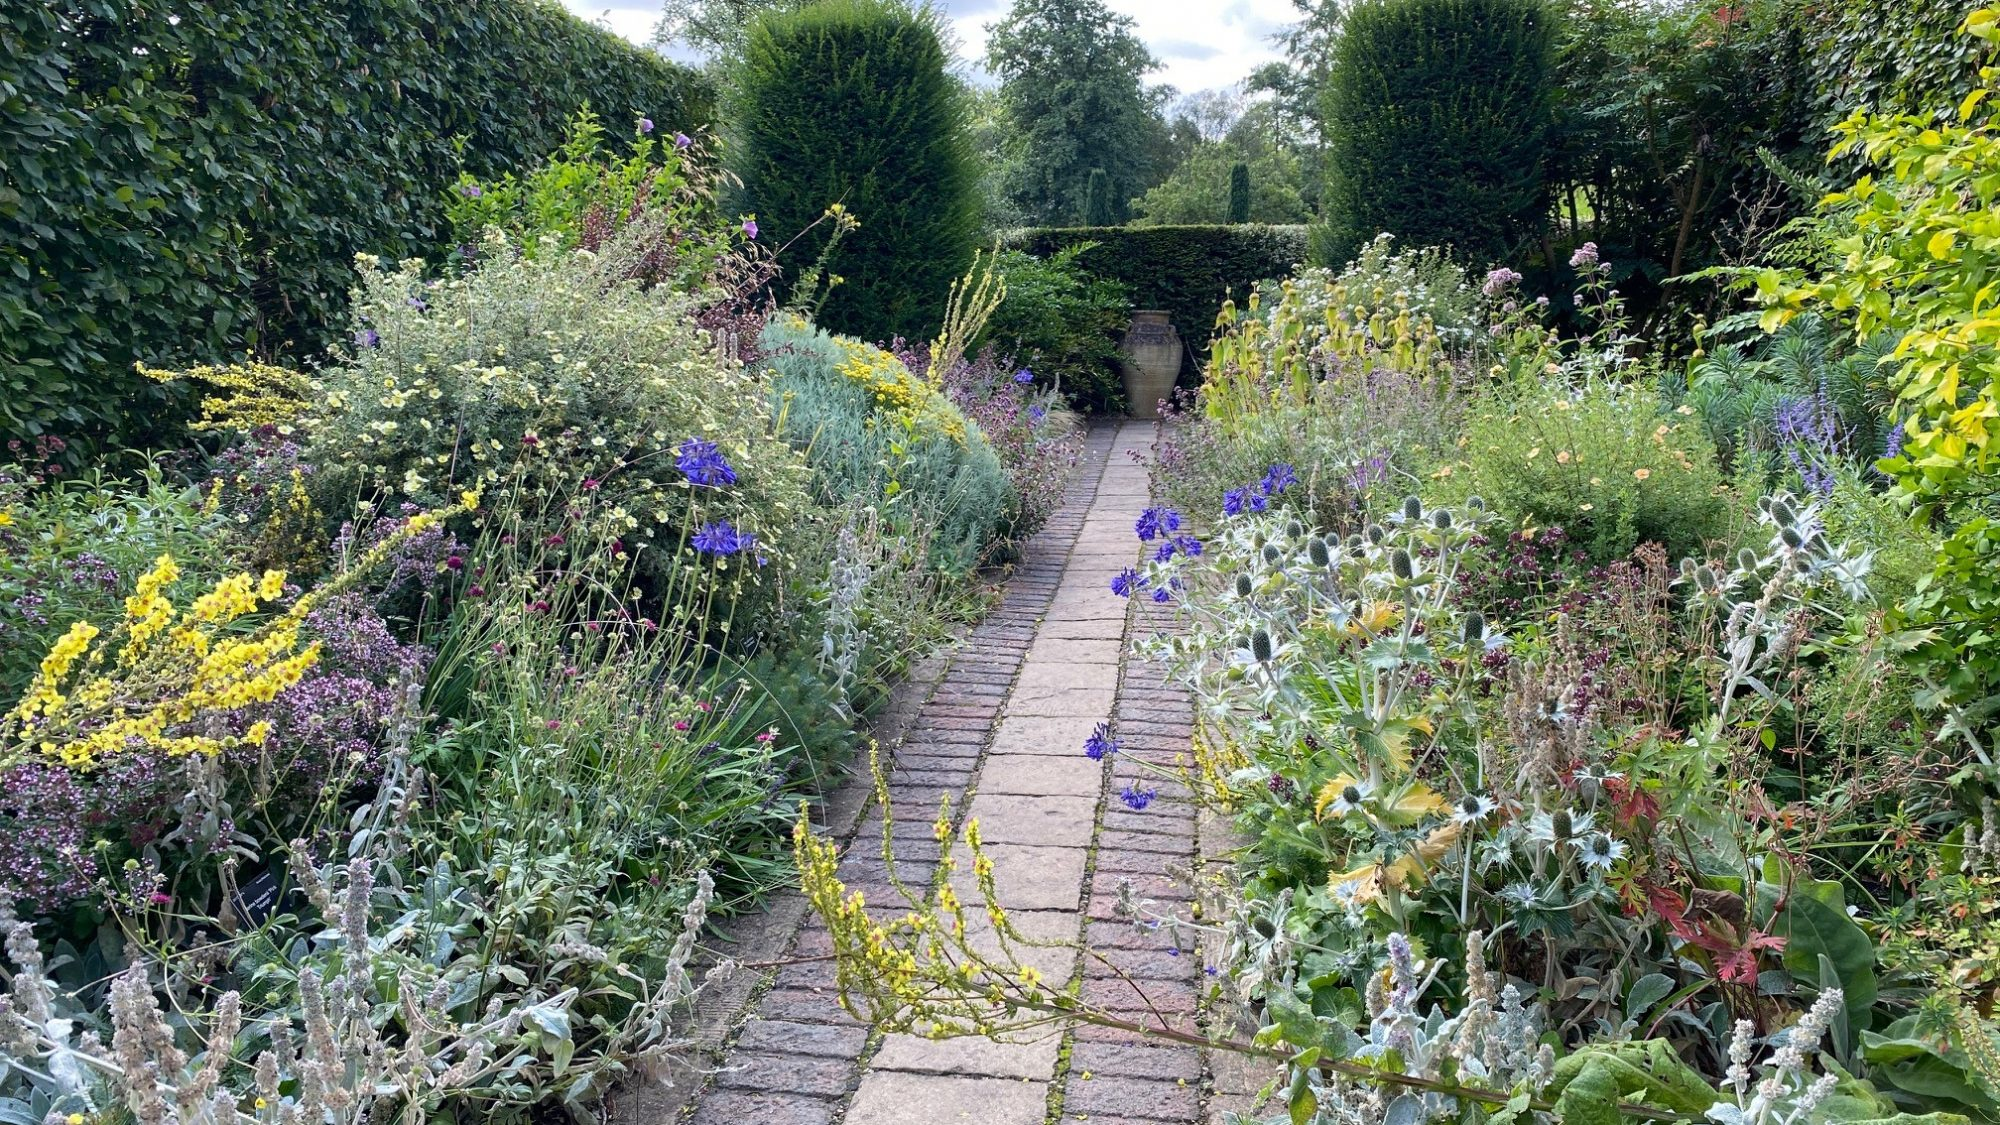 view of the Dry Garden